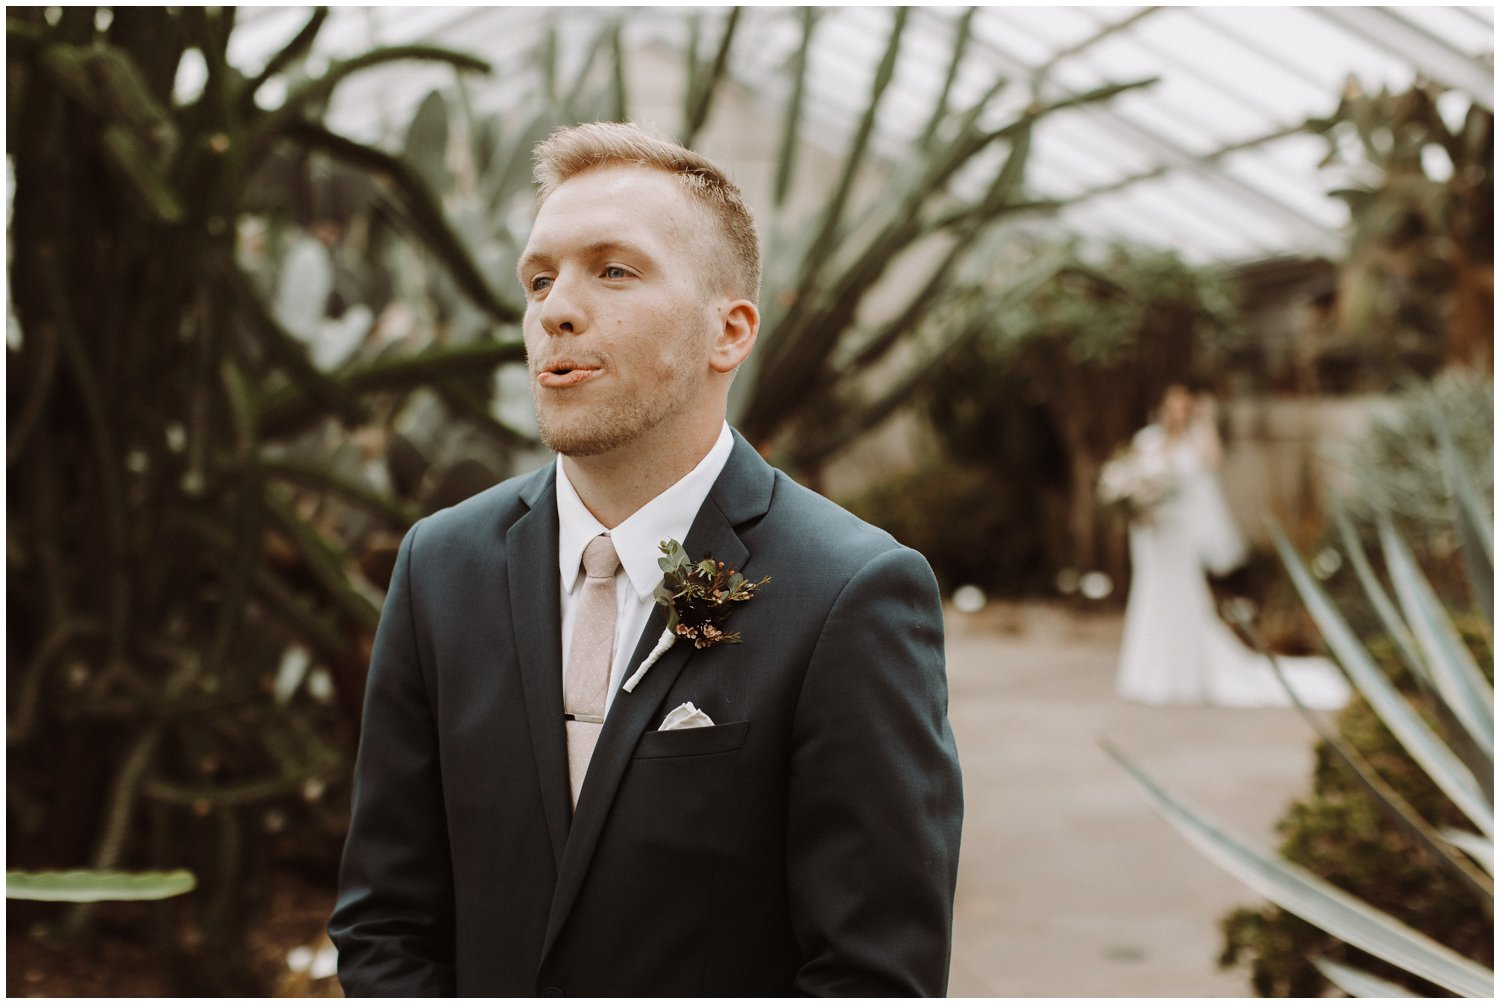 Baltimore wedding photographer   bride and groom first look   greenhouse wedding   Rawlings conservatory wedding